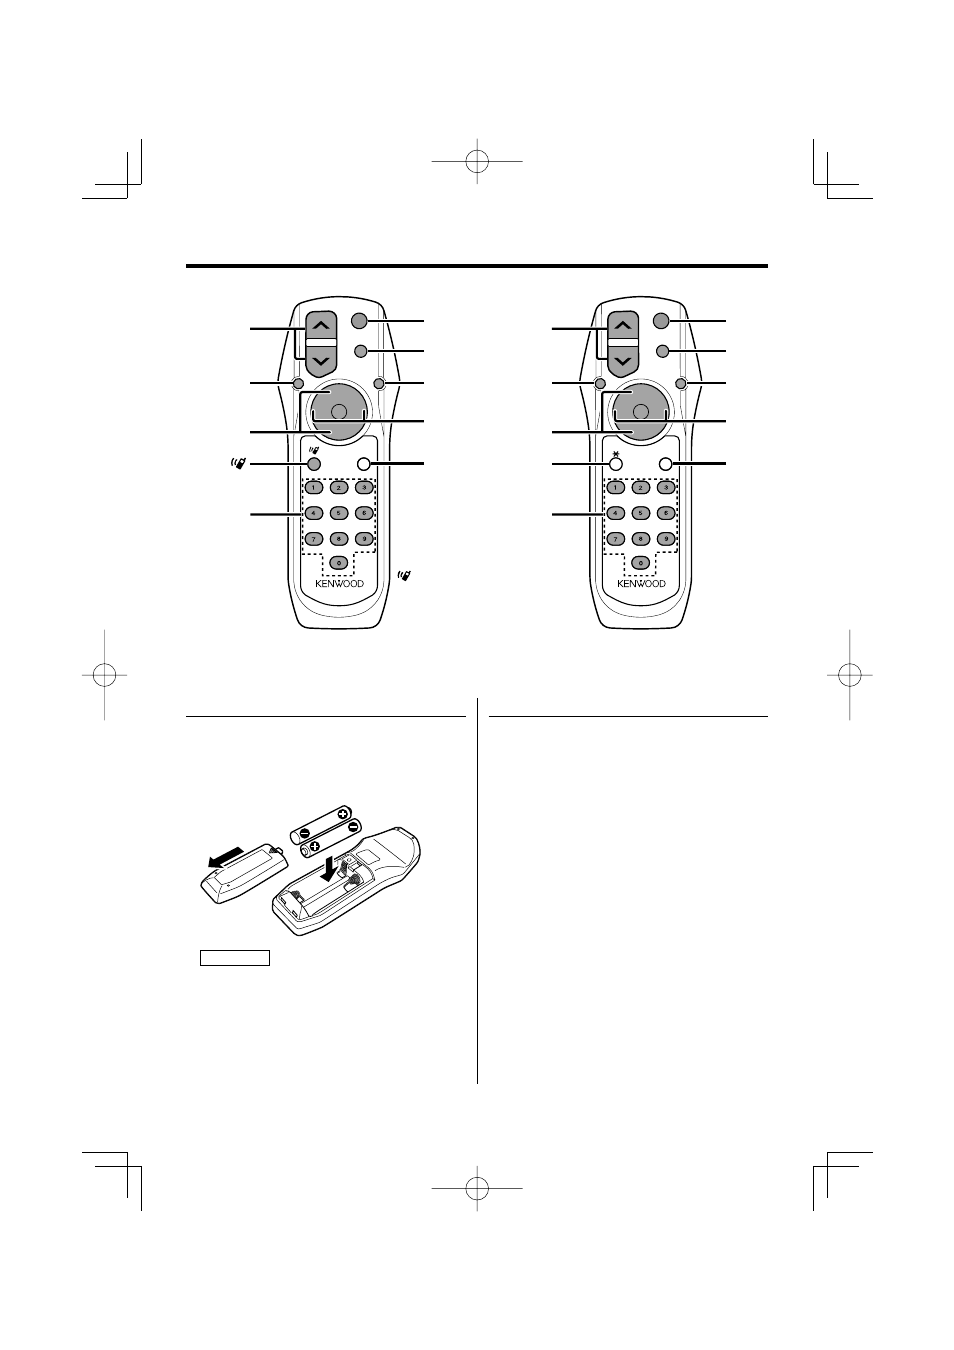 basic operations of remote control loading and replacing the rh manualsdir com Kenwood Car Stereo Manual Kenwood eXcelon Manual